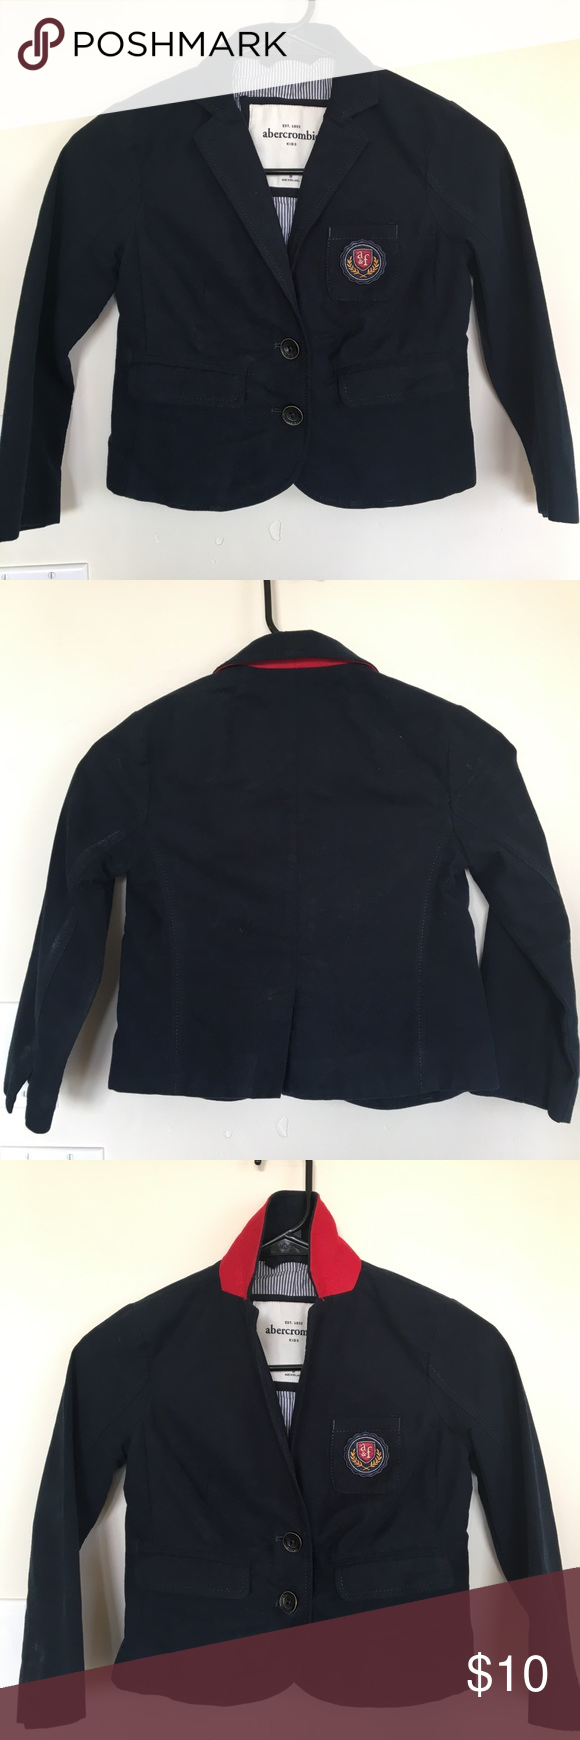 Abercrombie Kids Blazer. Girl's size (M) Abercrombie Kids Blazer. Girl's size (M). Cute w/ dress pants, skirt or jeans, Soft cotton. Beautifully lined. Great condition. Abercombie Kids Jackets & Coats Blazers